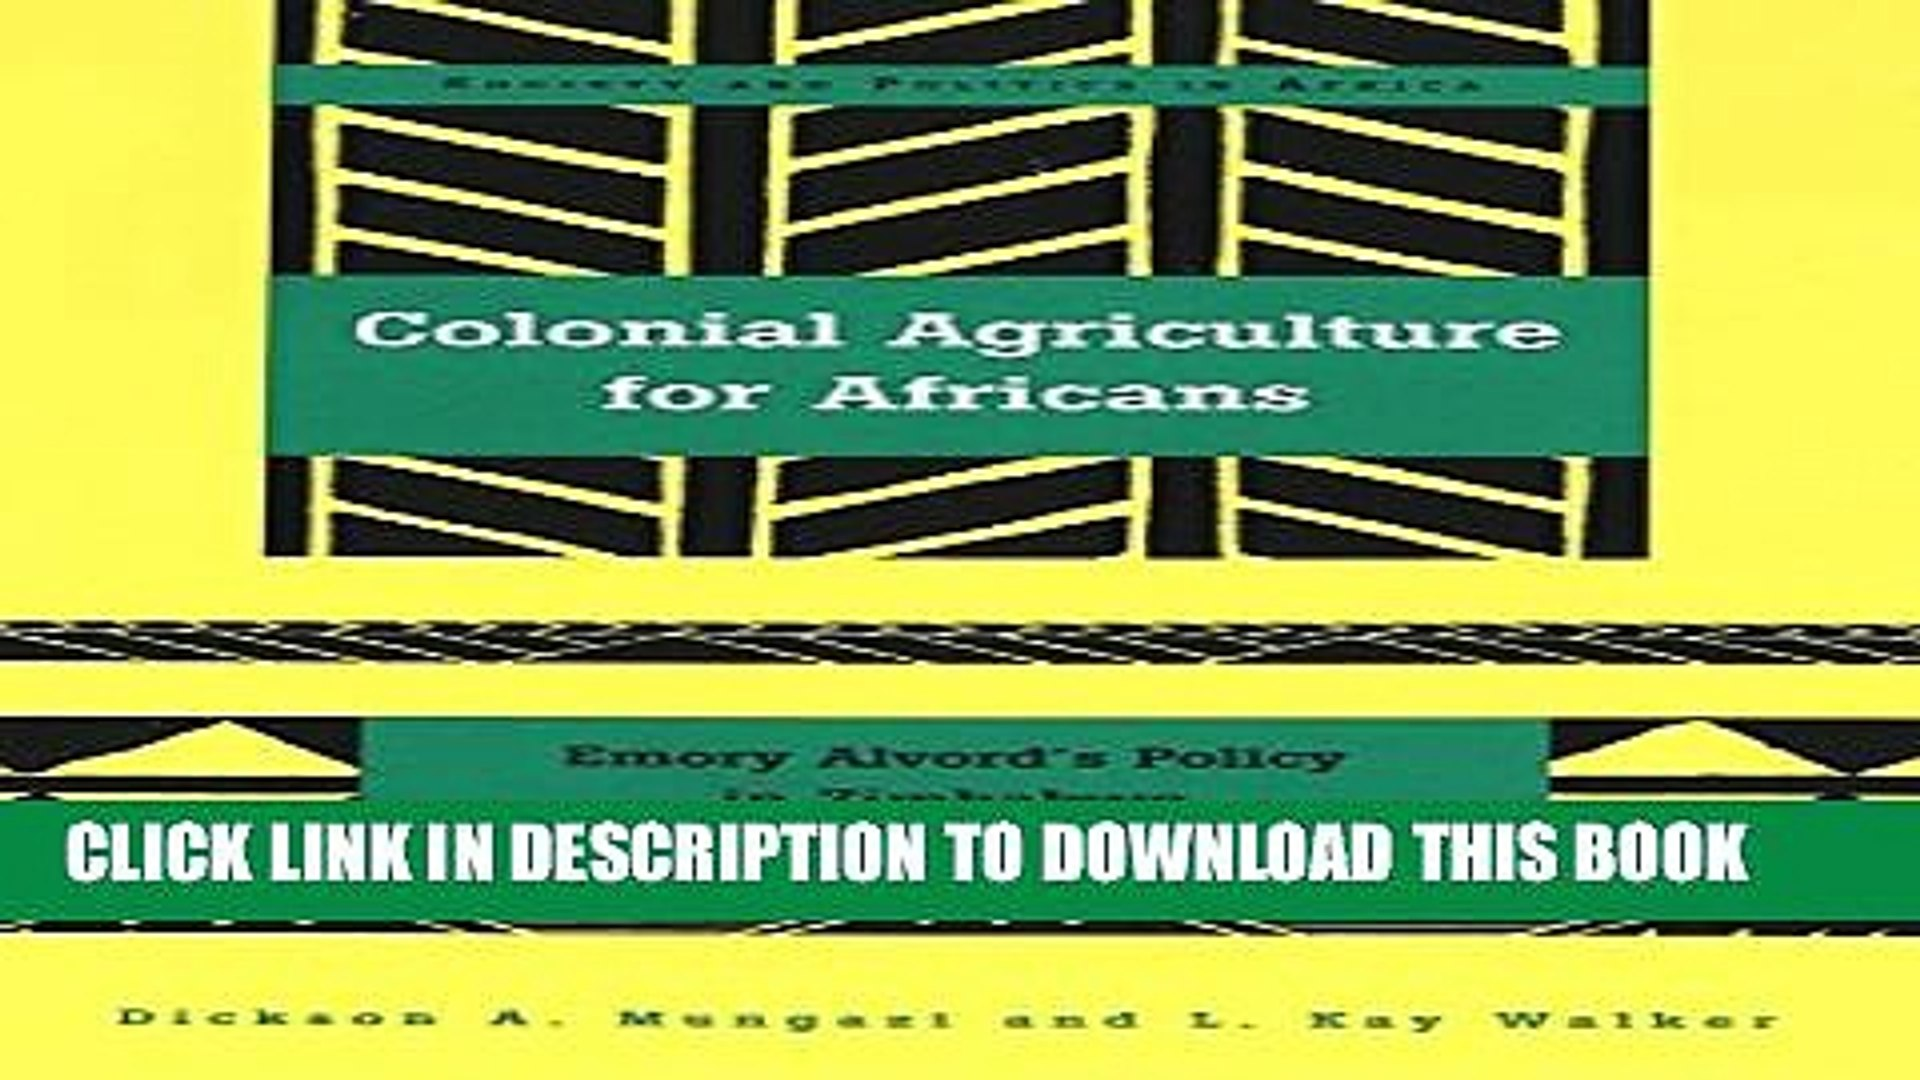 [PDF] Colonial Agriculture for Africans: Emory Alvord s Policy in Zimbabwe (Society and Politics